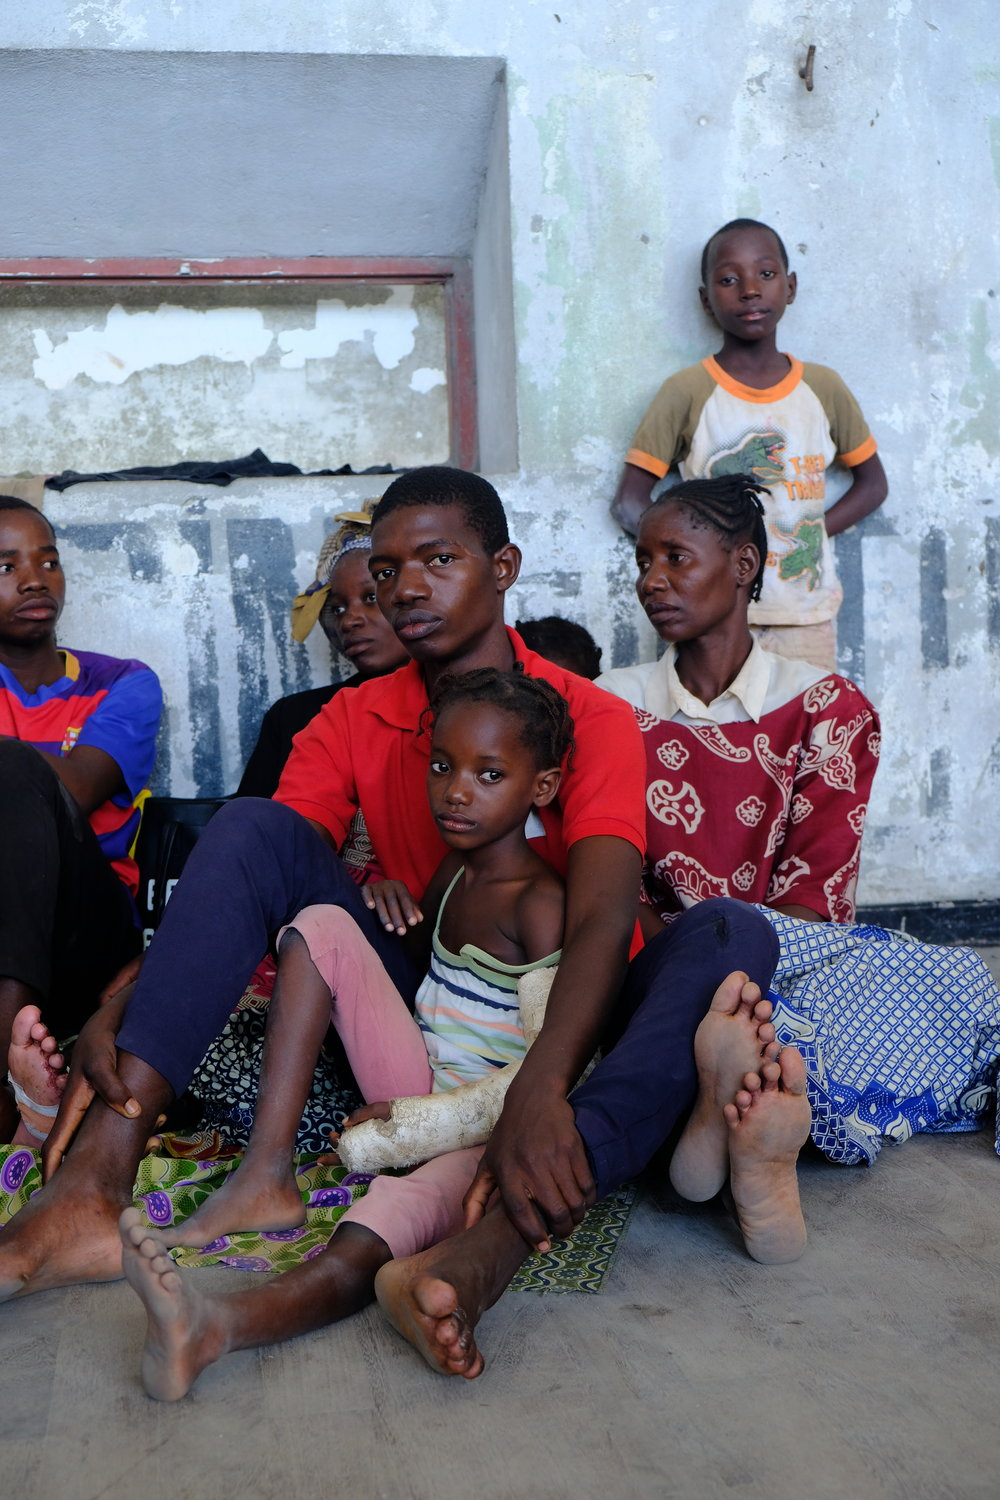 Otilia and her family have sought shelter in this Beira school gym, Mozambique.JPG